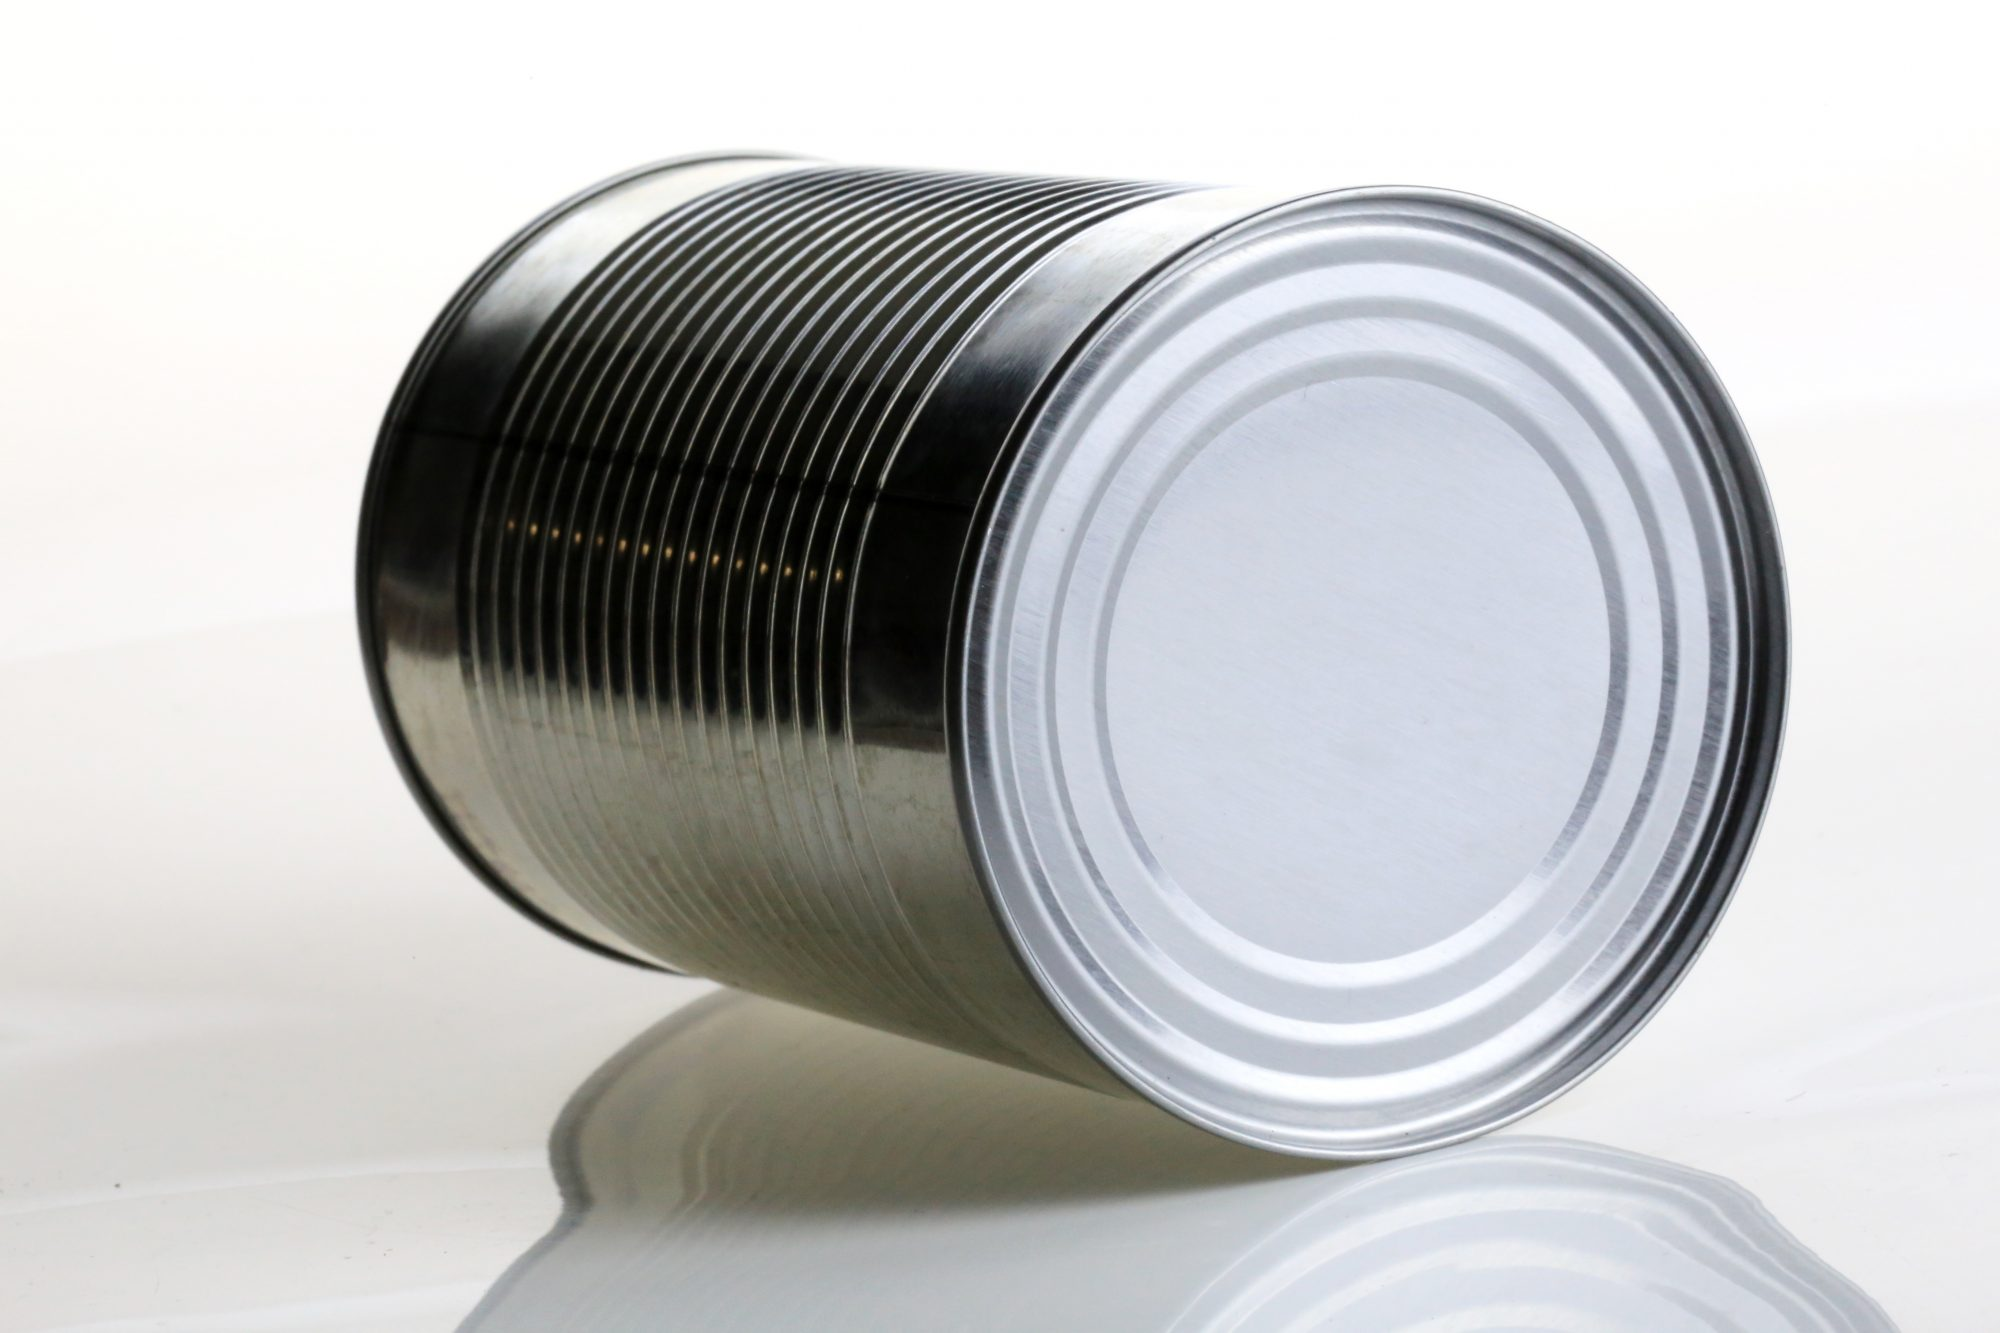 Unlabeled Canned Food